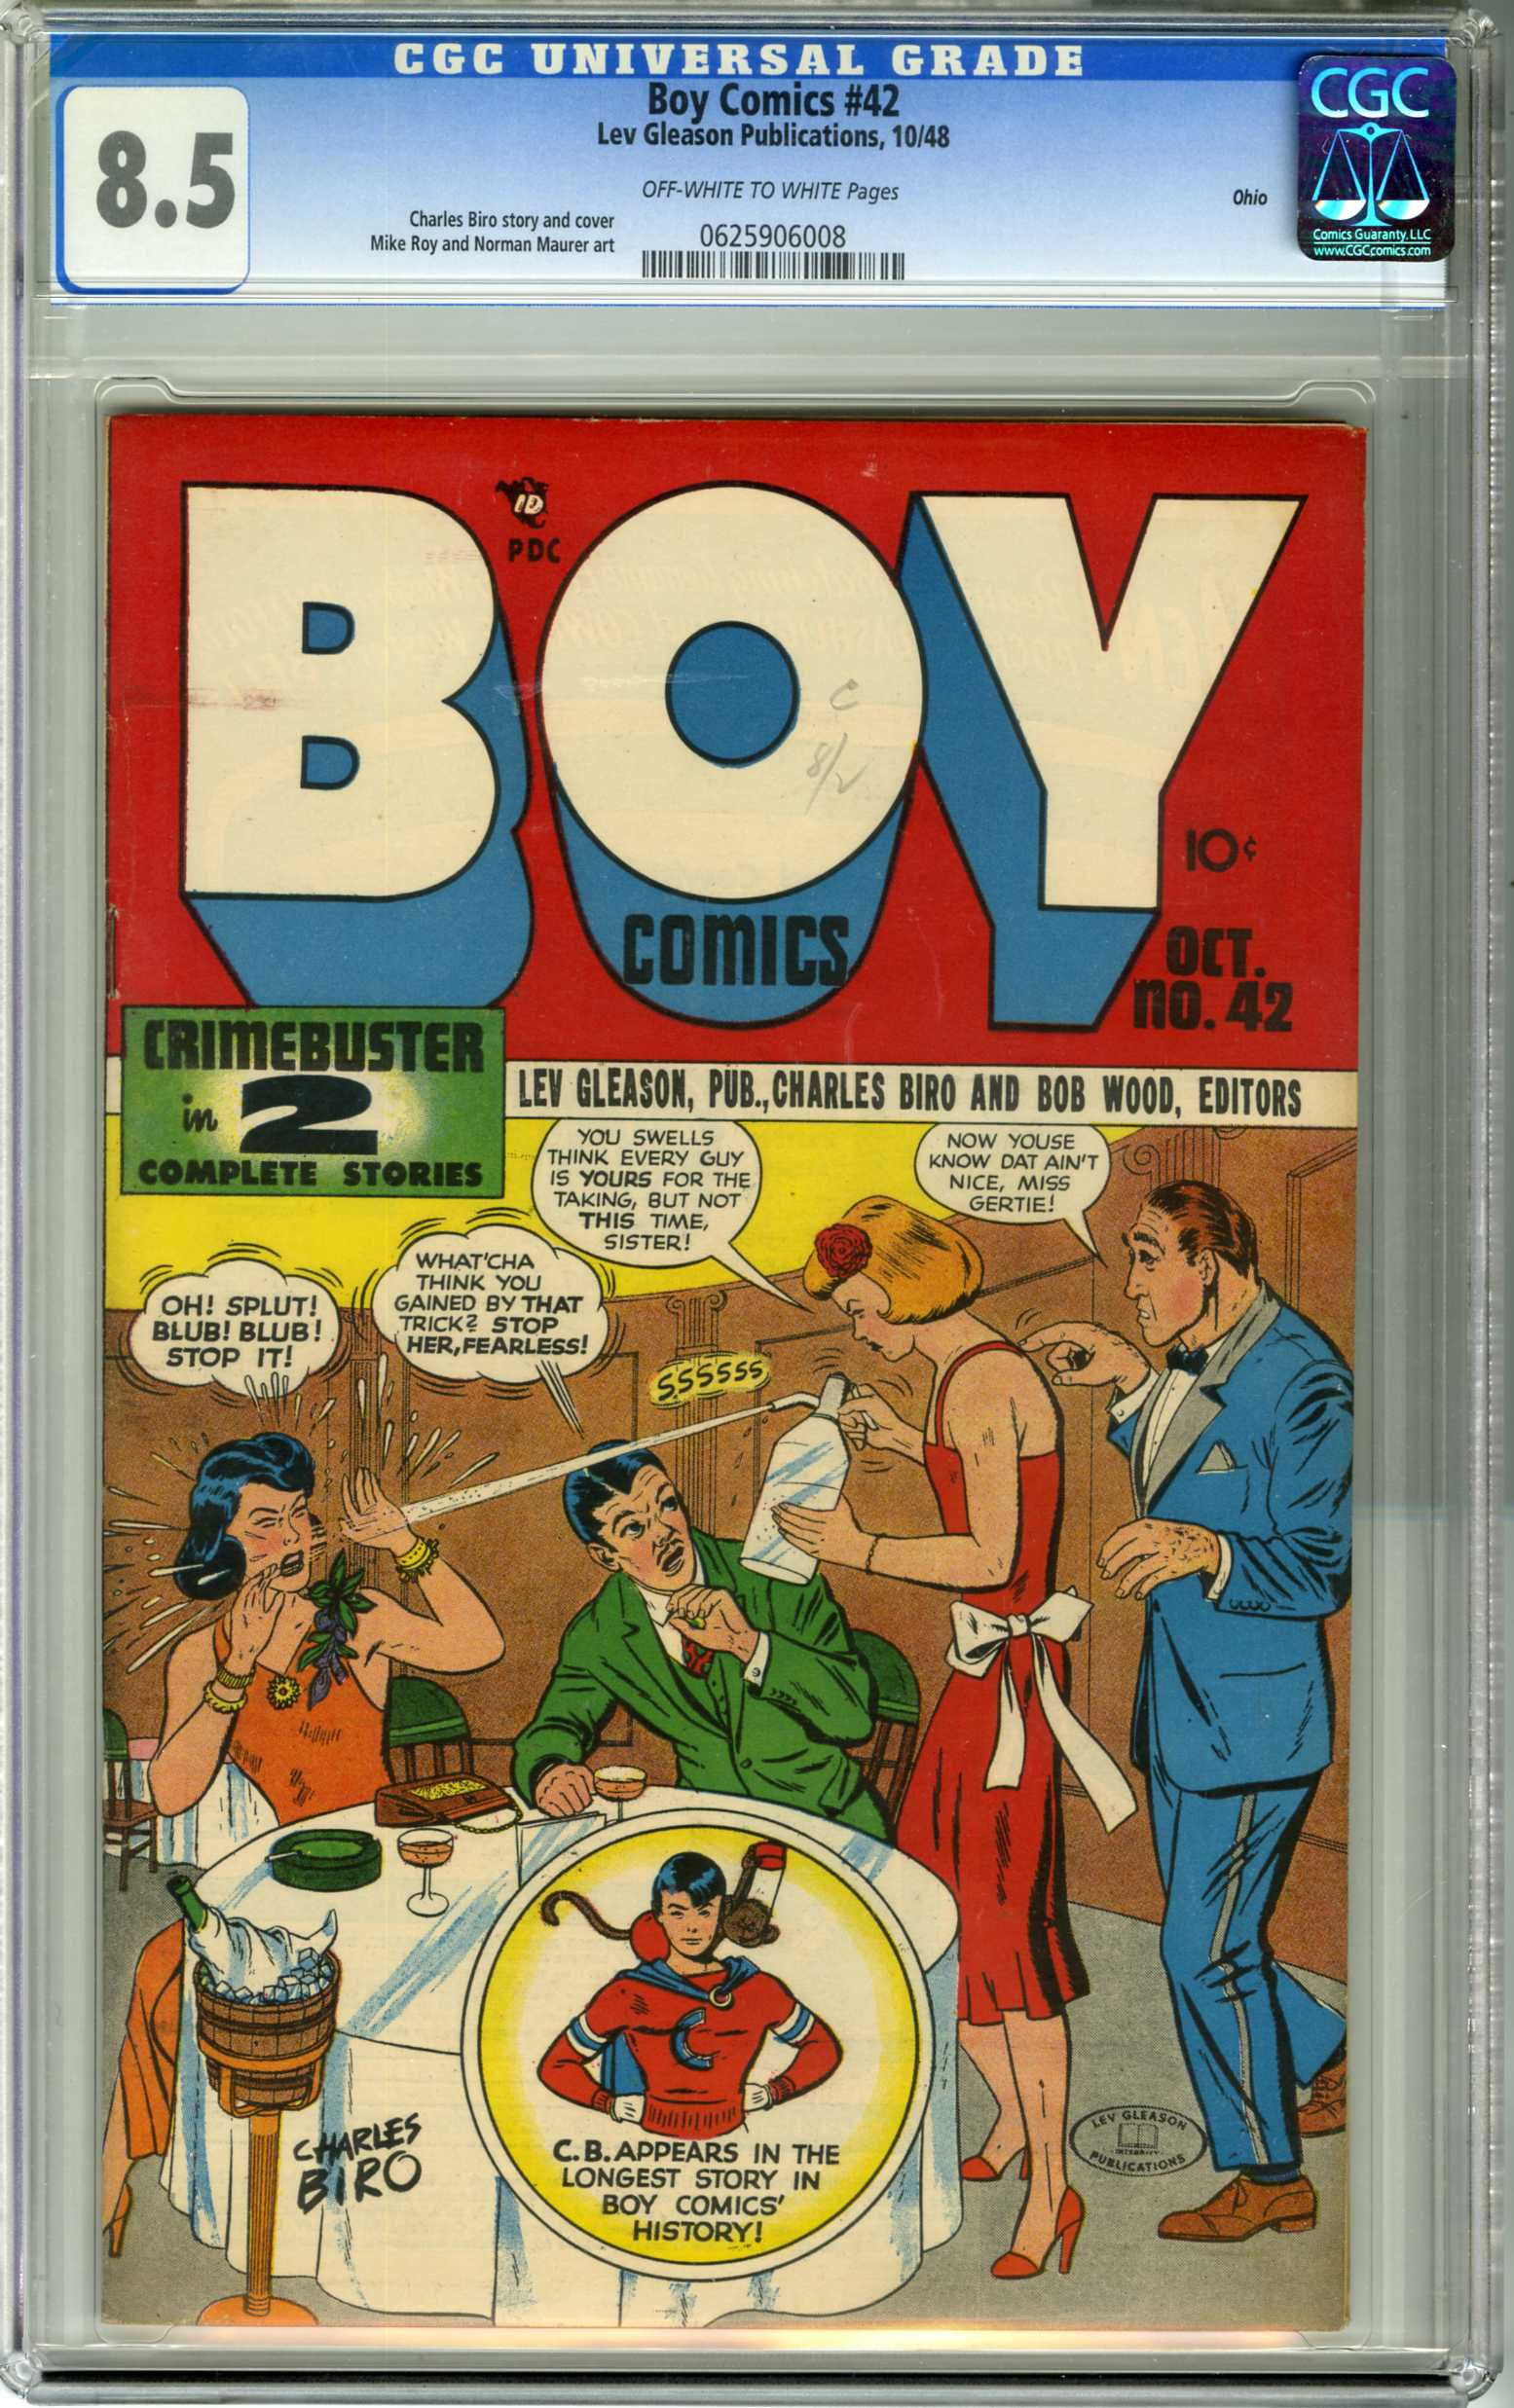 BOY COMICS #42 (1948) CGC VF+ 8.5 OWW Pages OHIO COPY / CHARLES BIRO COVER